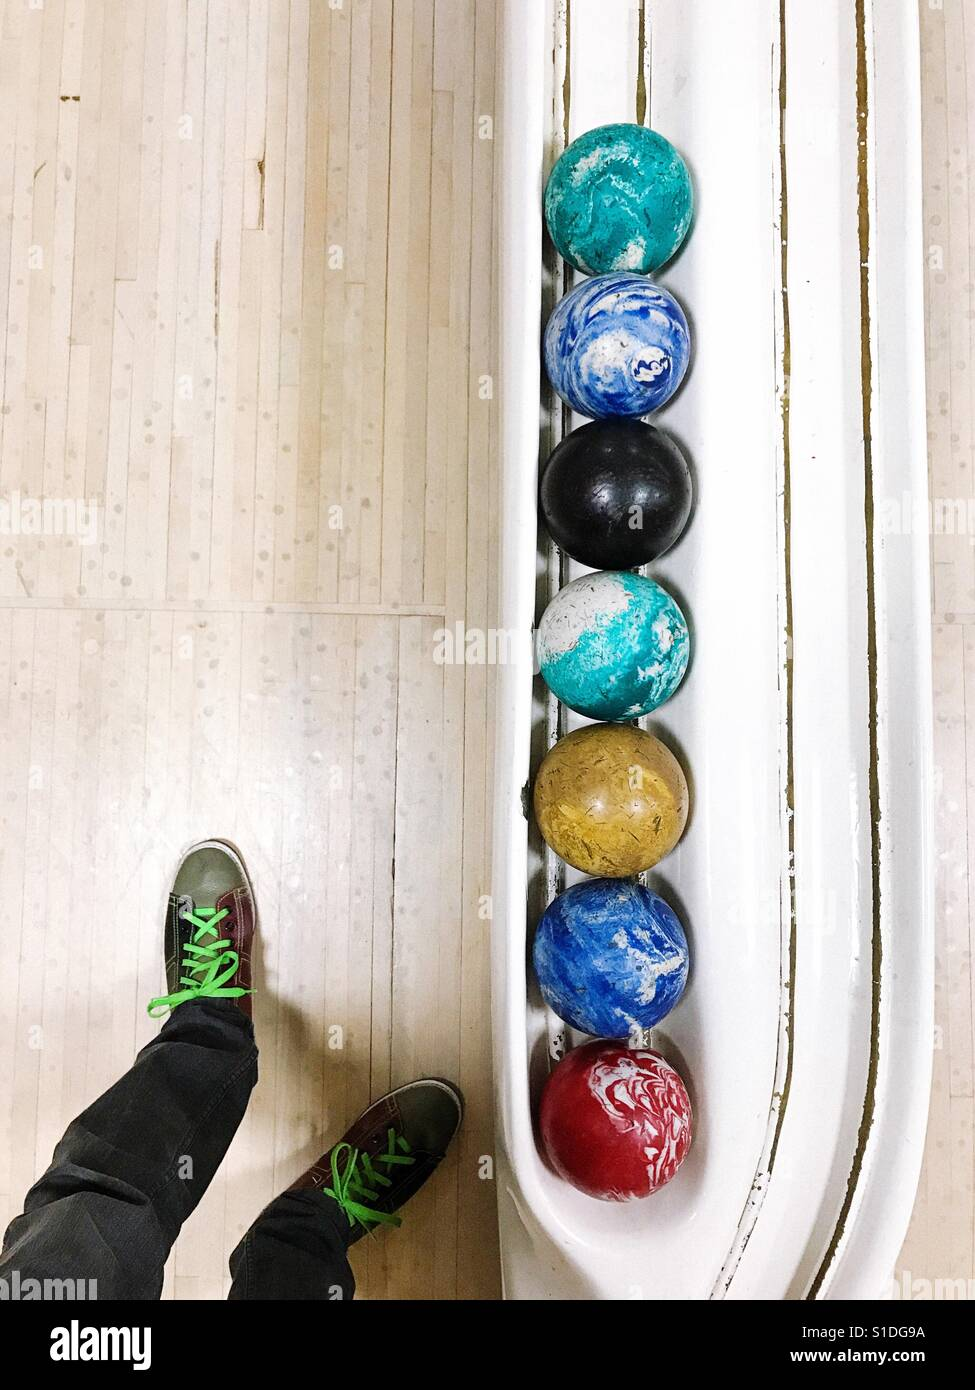 Duckpin bowling in Connecticut, USA. - Stock Image